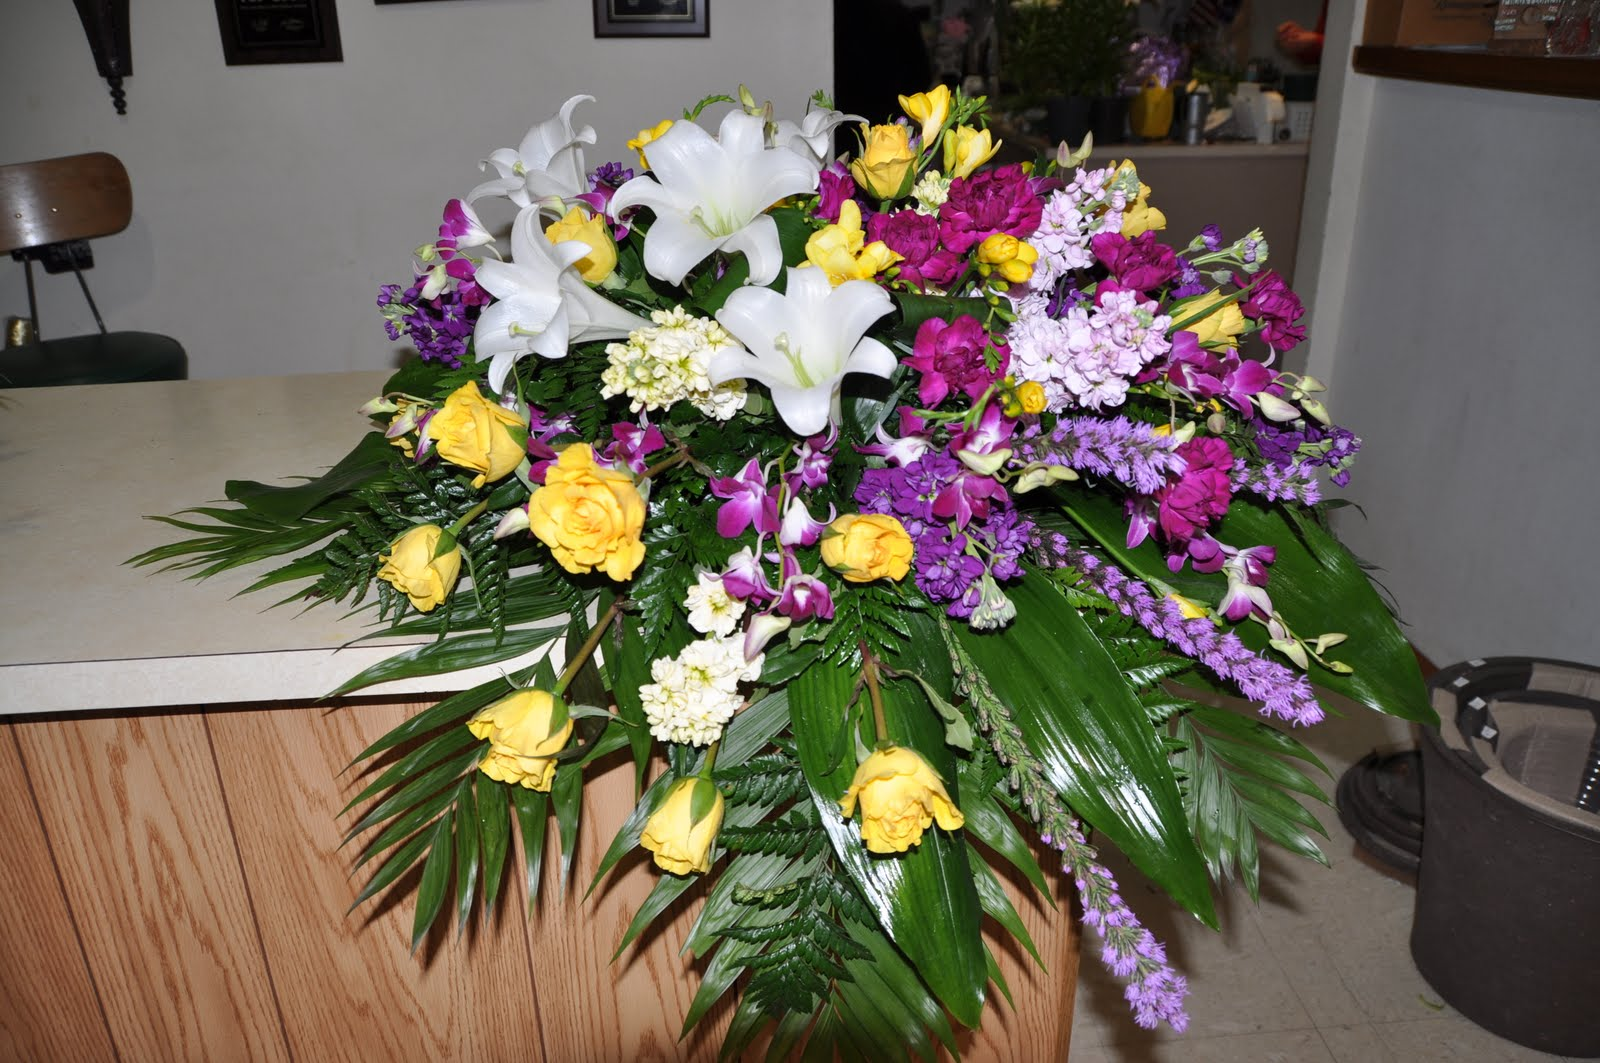 Mioux Florist new Funeral flower arrangements